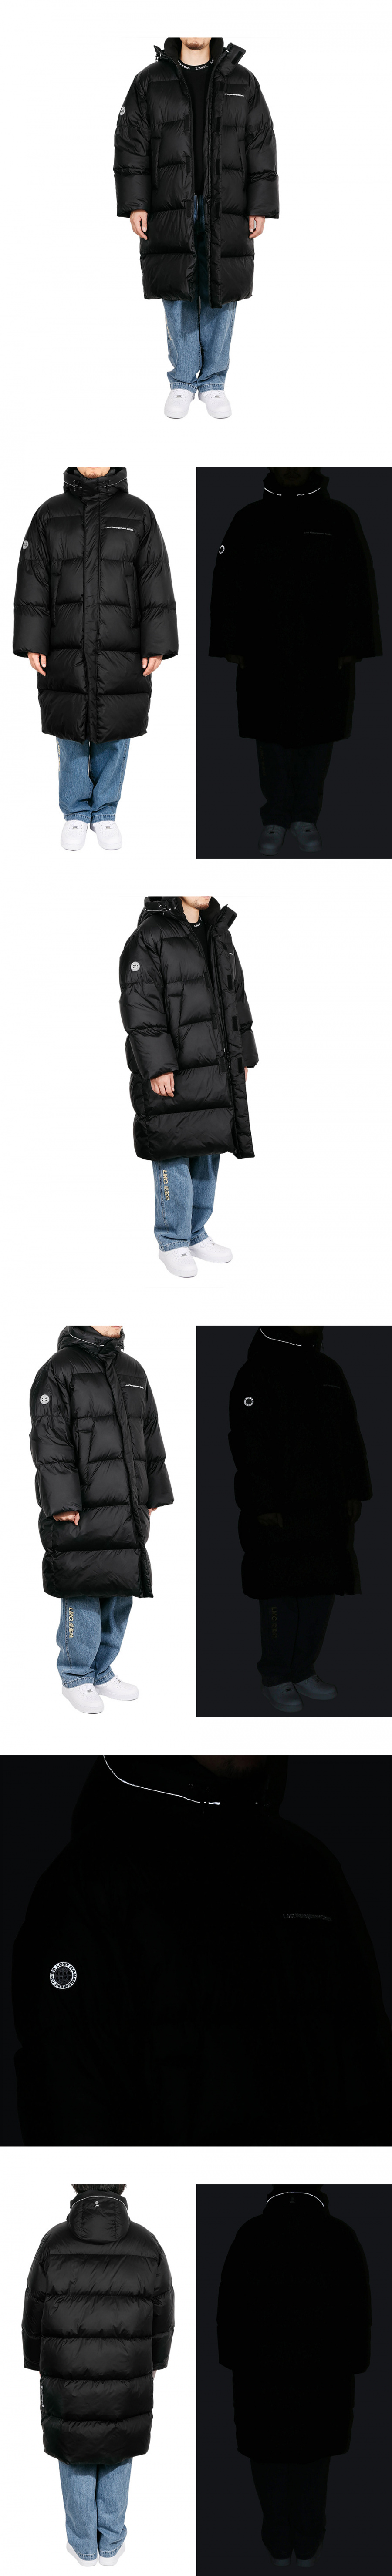 엘엠씨(LMC) LMC OVERSIZED LONG PUFFER COAT black